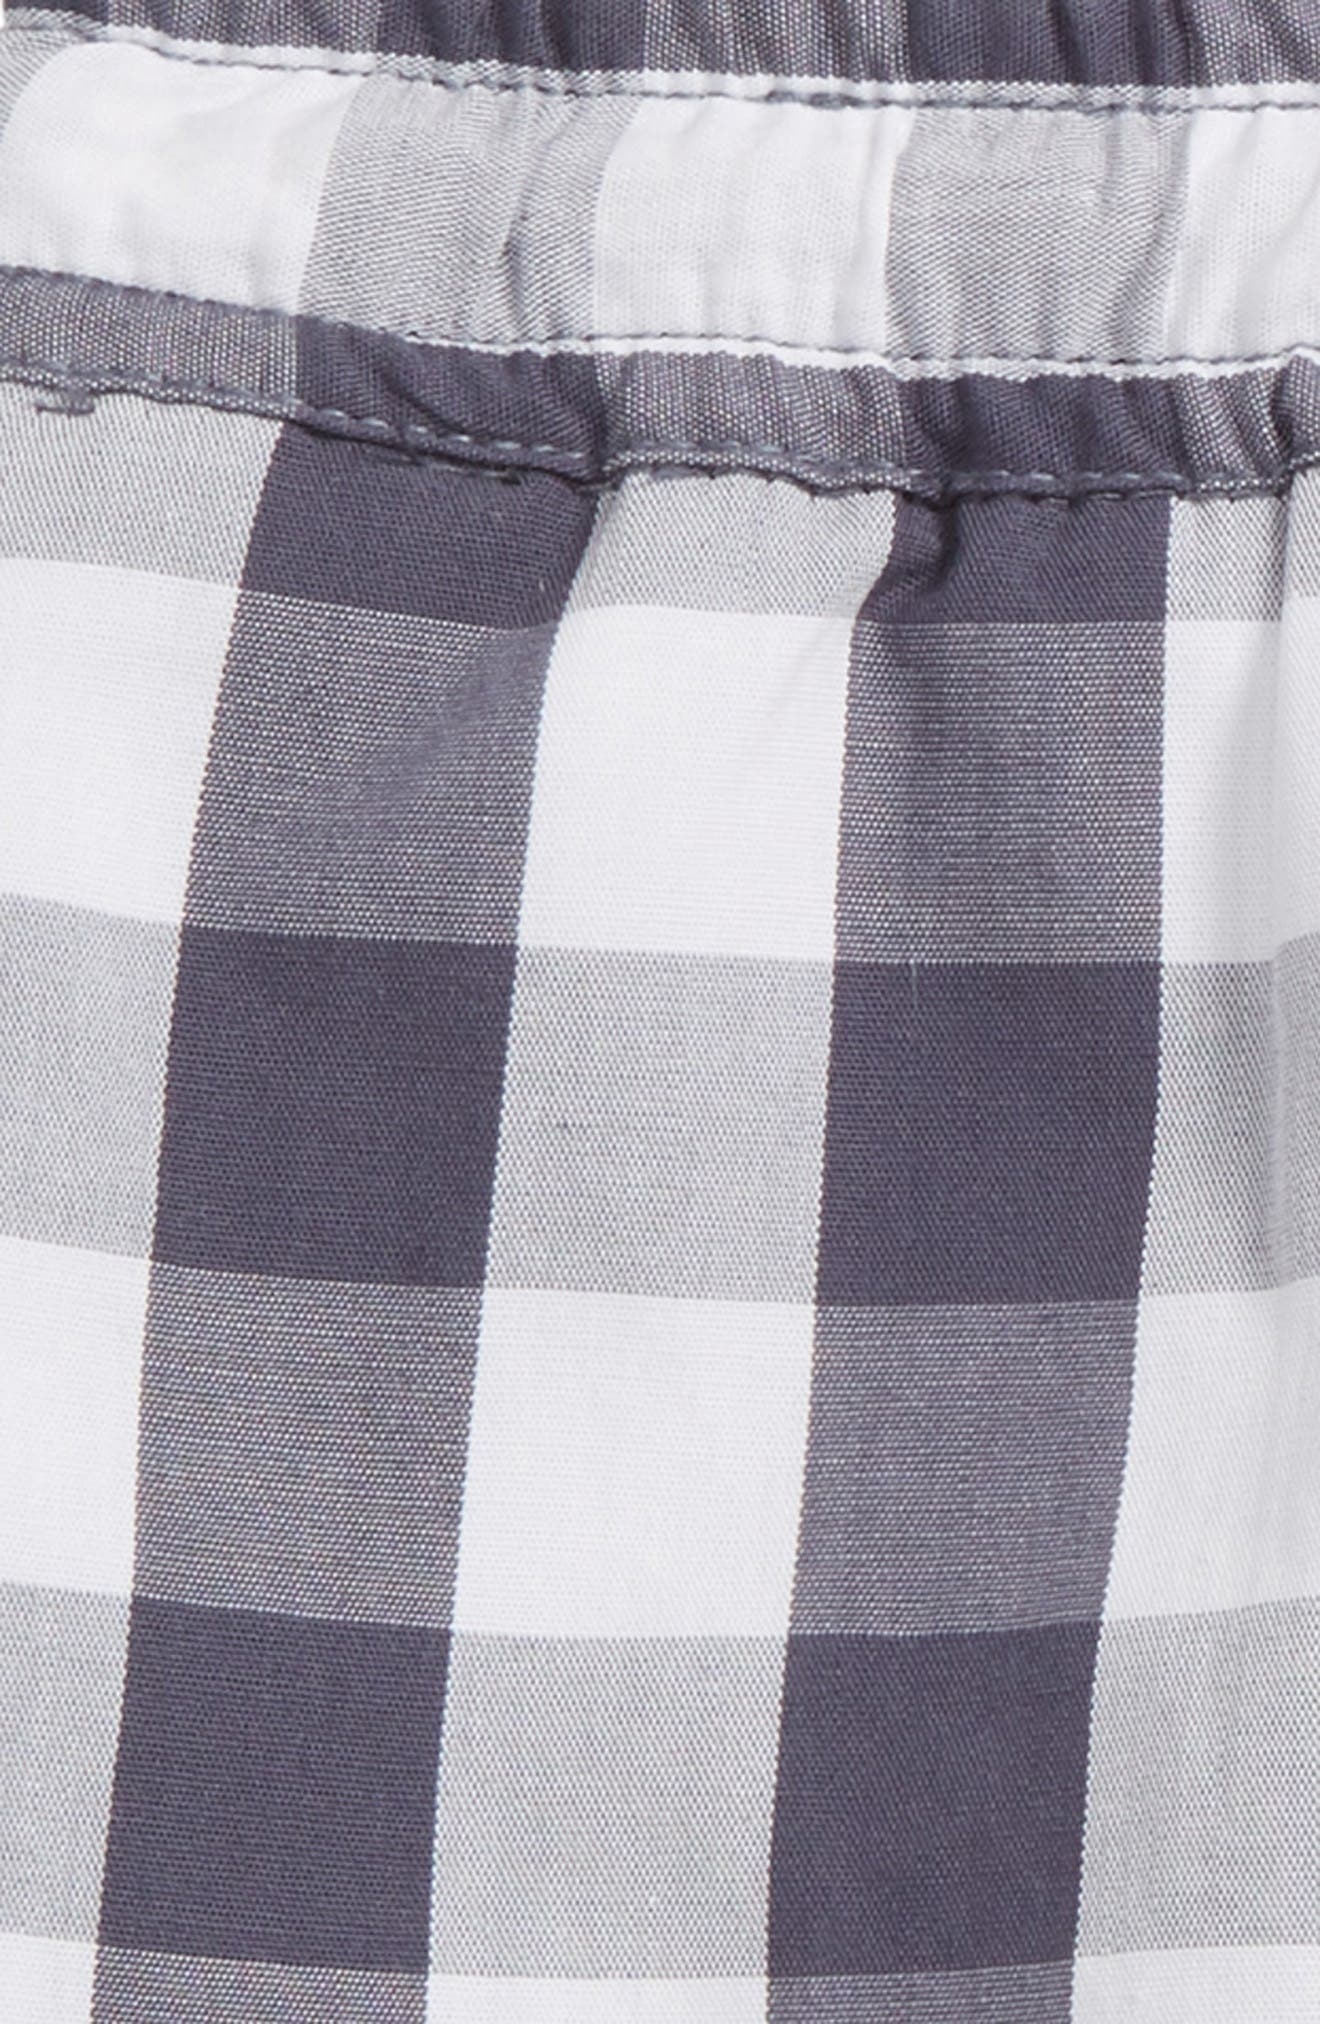 Anders Gingham Shorts,                             Alternate thumbnail 2, color,                             Greyblue